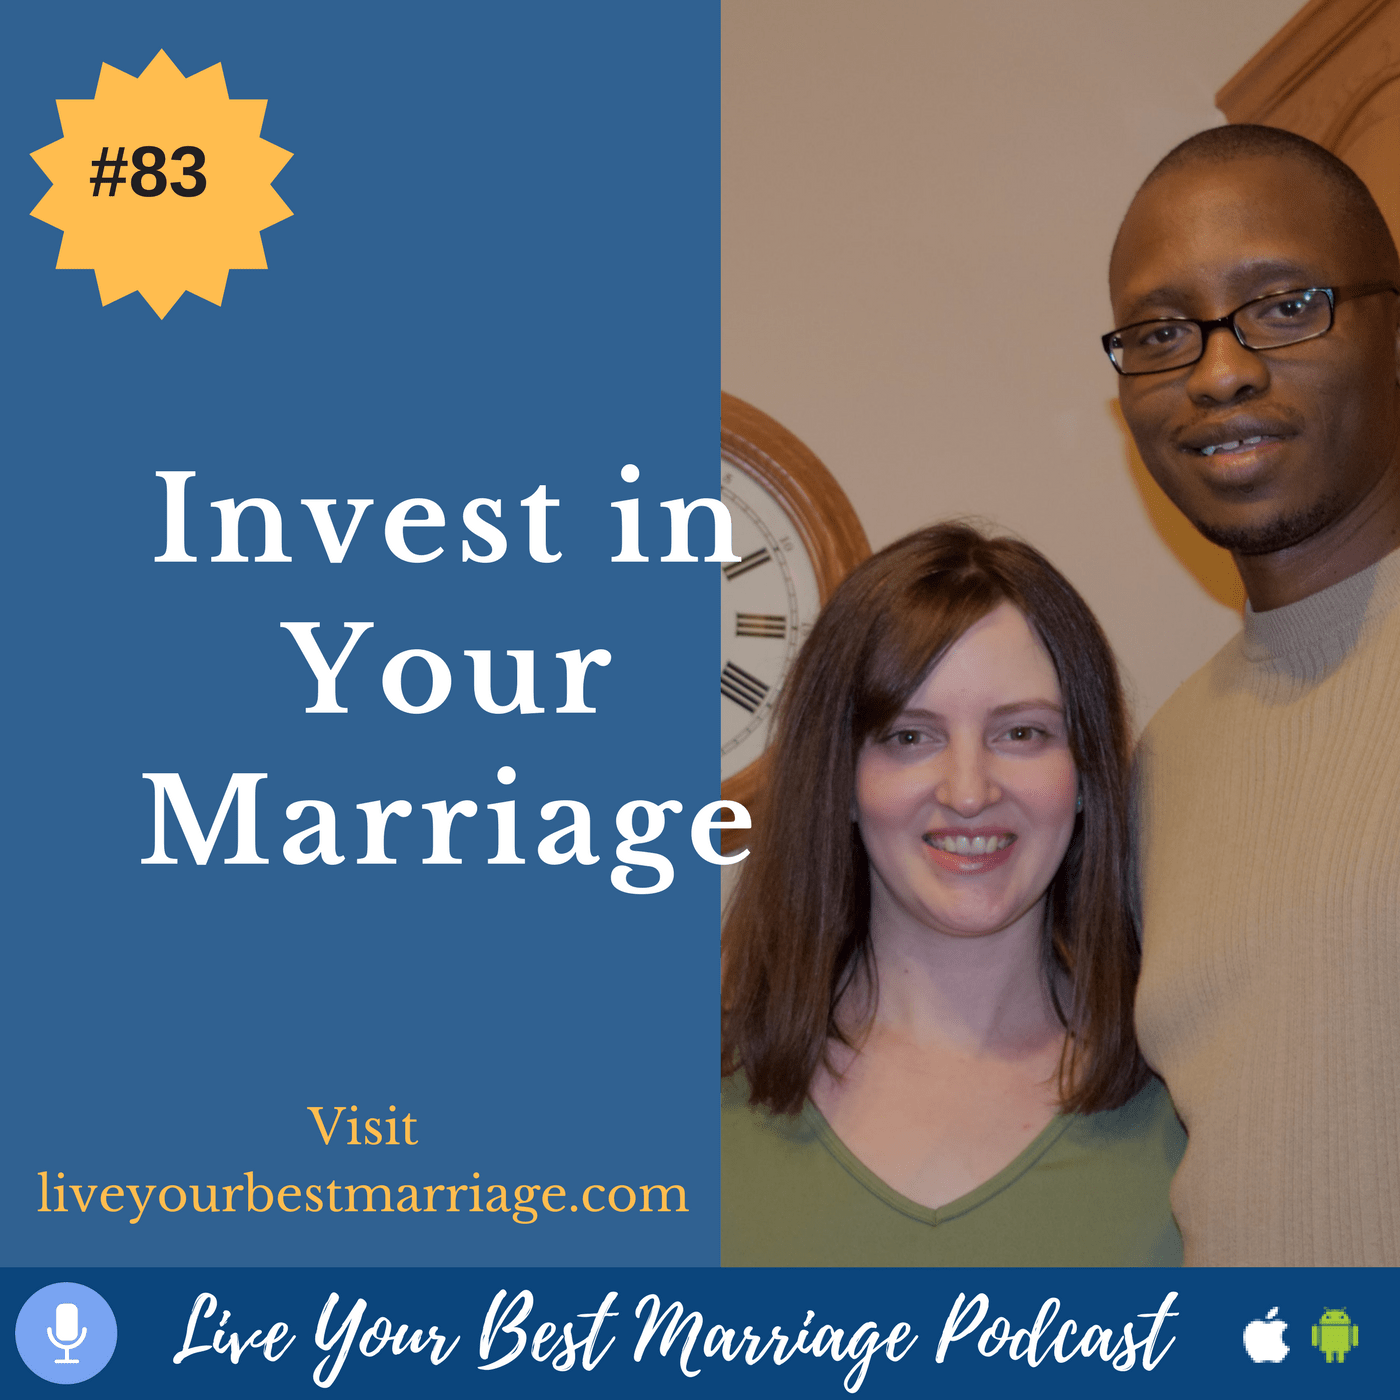 episode-83-invest-in-your-marriage-audio_thumbnail.png